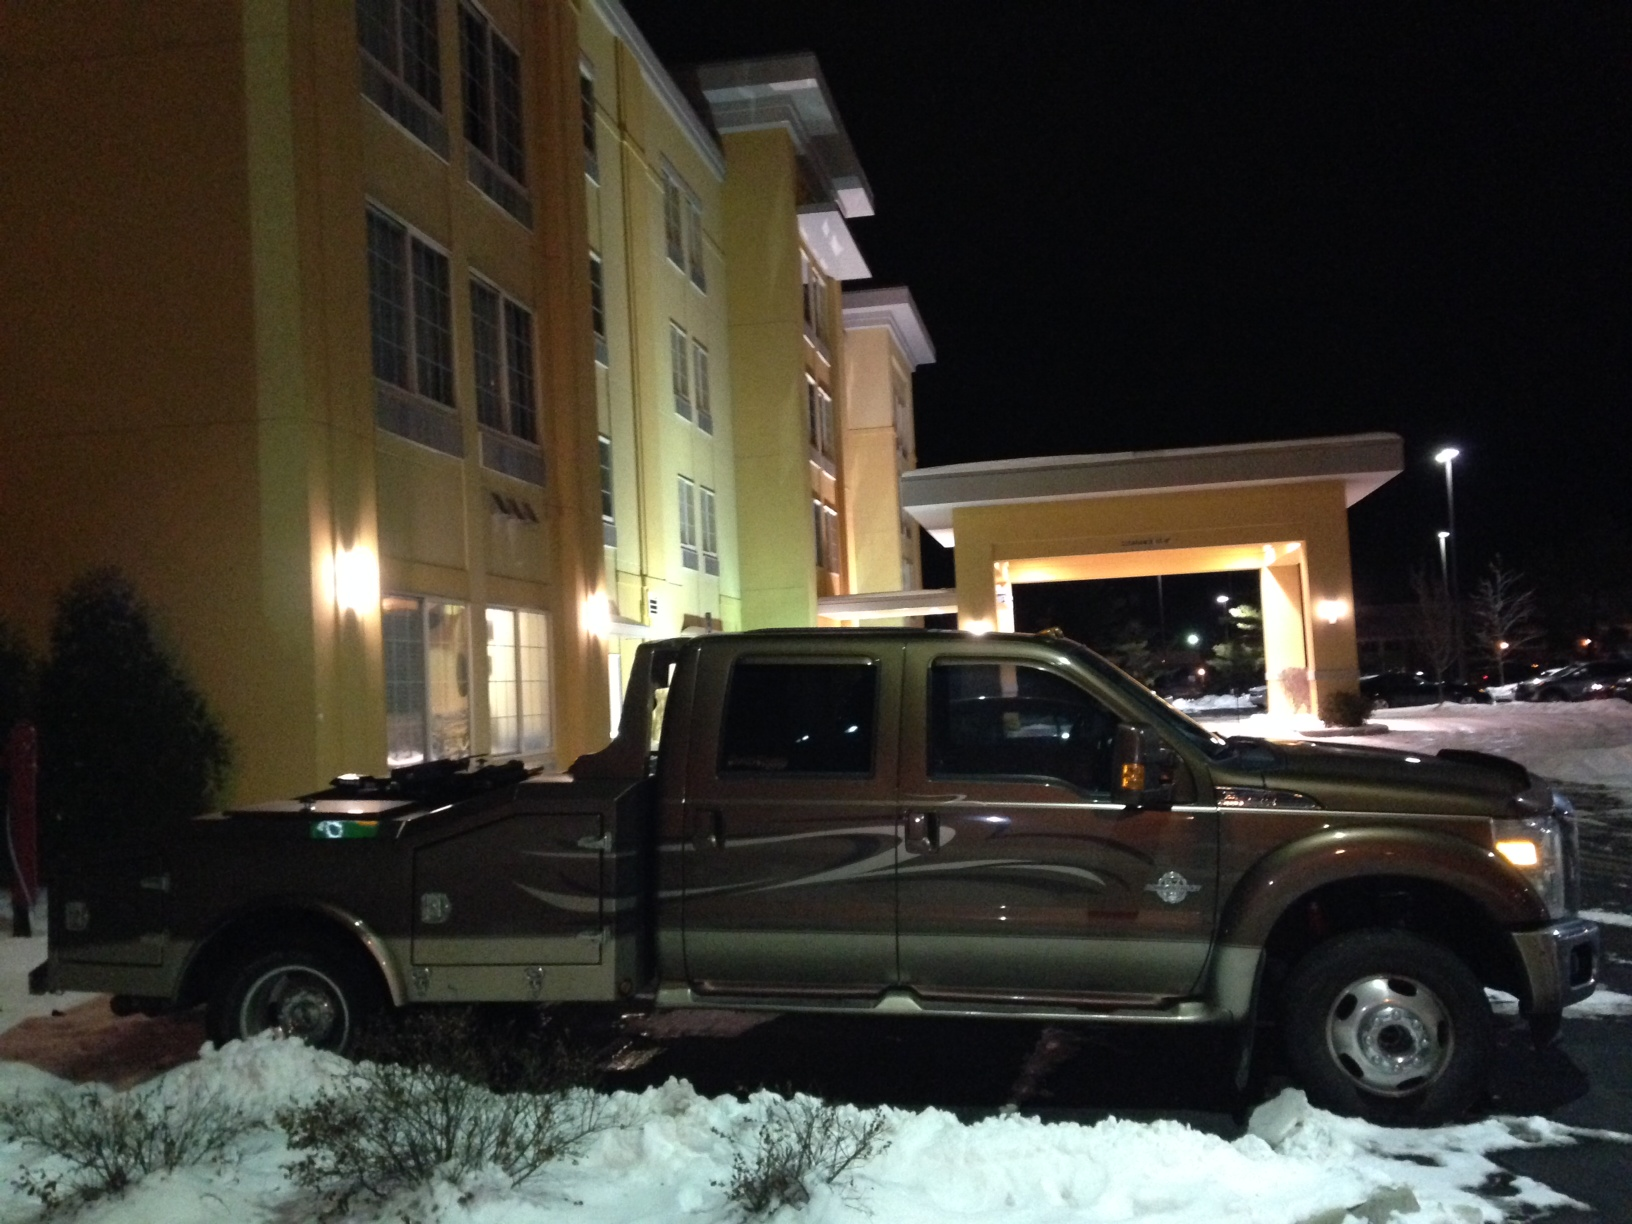 Truck at LaQuinta Inn - Columbus, IN